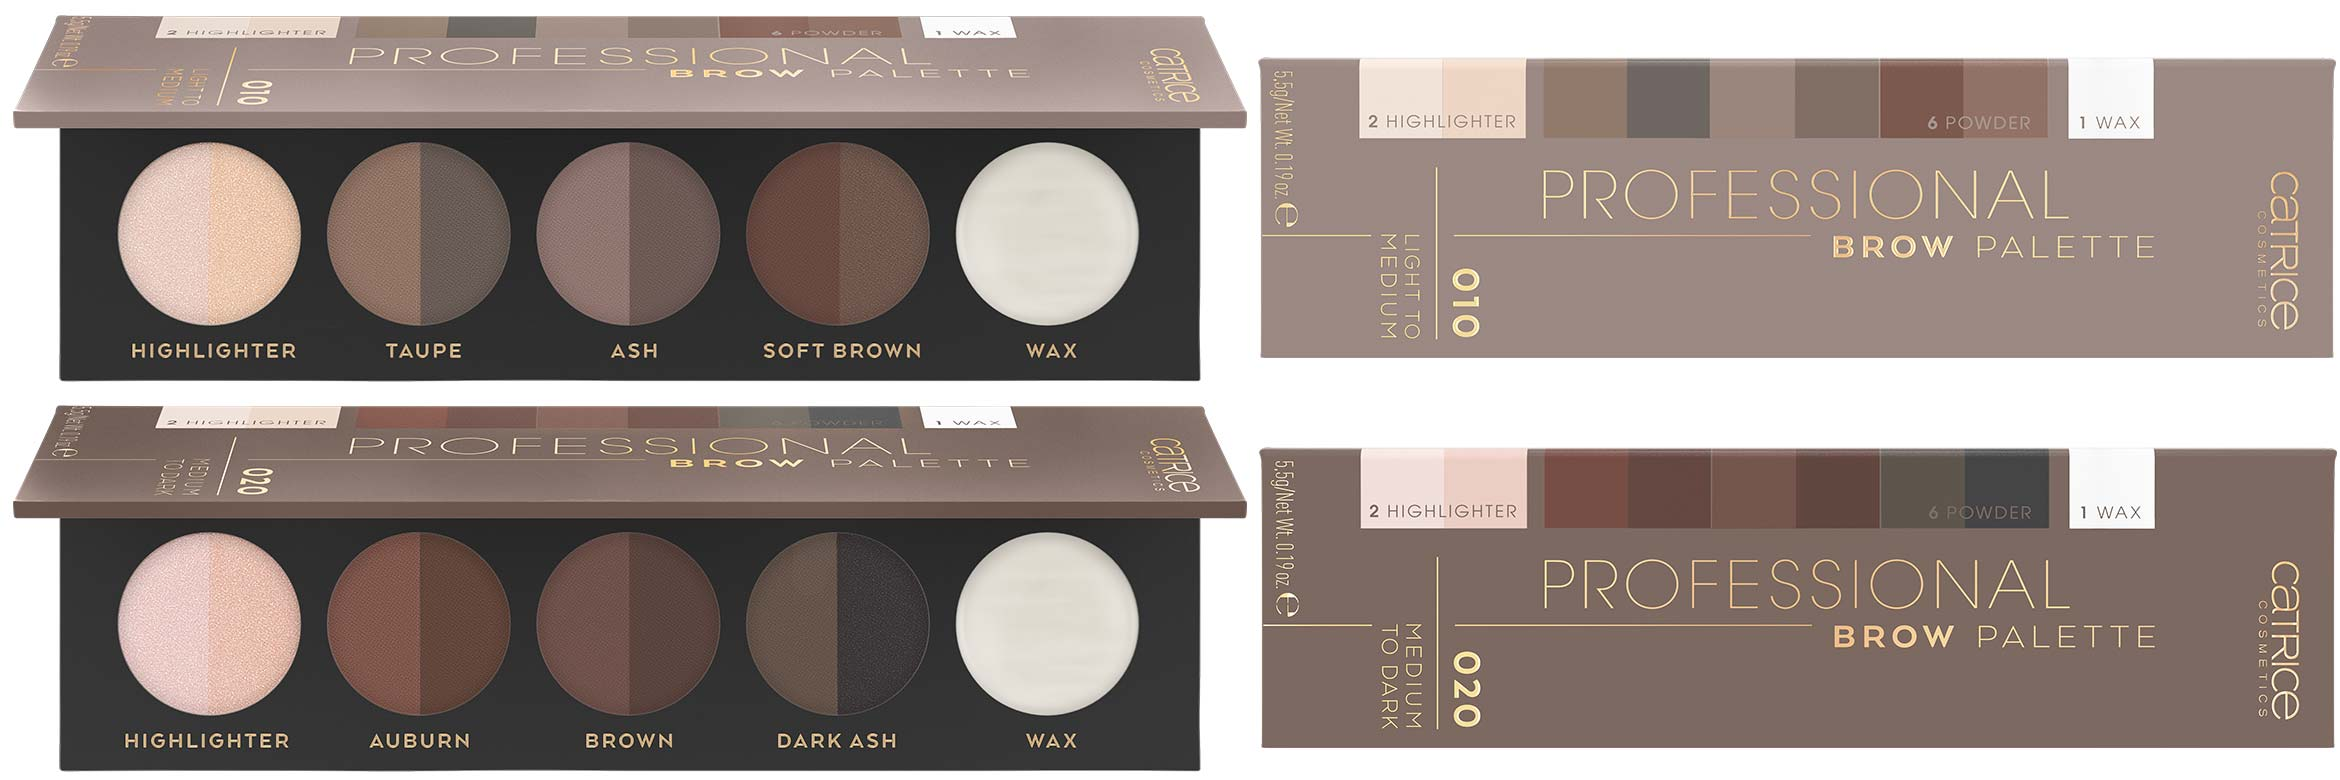 catrice professional brow palette - CATRICE ASSORTIMENTSUPDATE LENTE/ ZOMER 2020